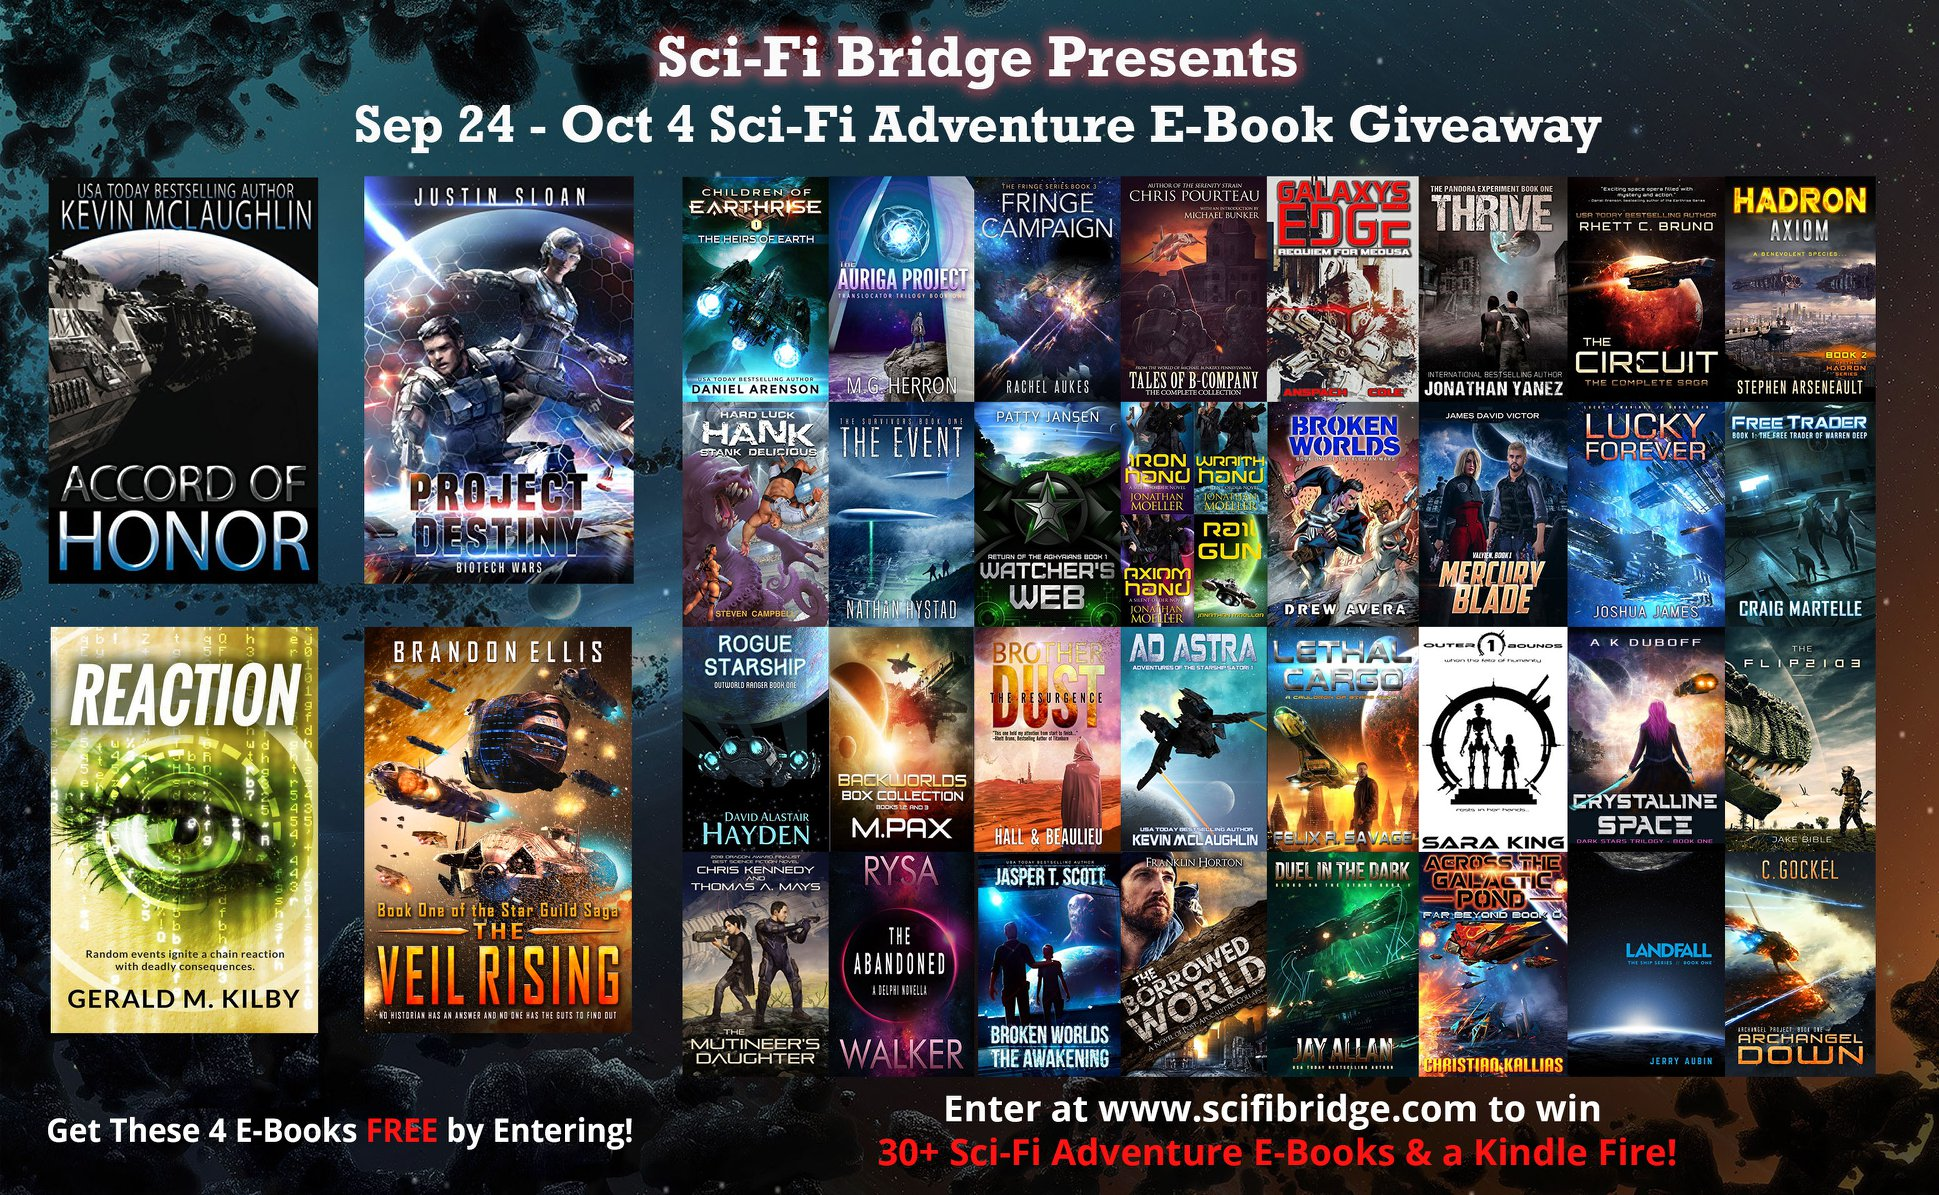 Sci-Fi Bridge Presents Sept 24 - Oct 4 Sci-Fi Adventure E-Book Giveaway